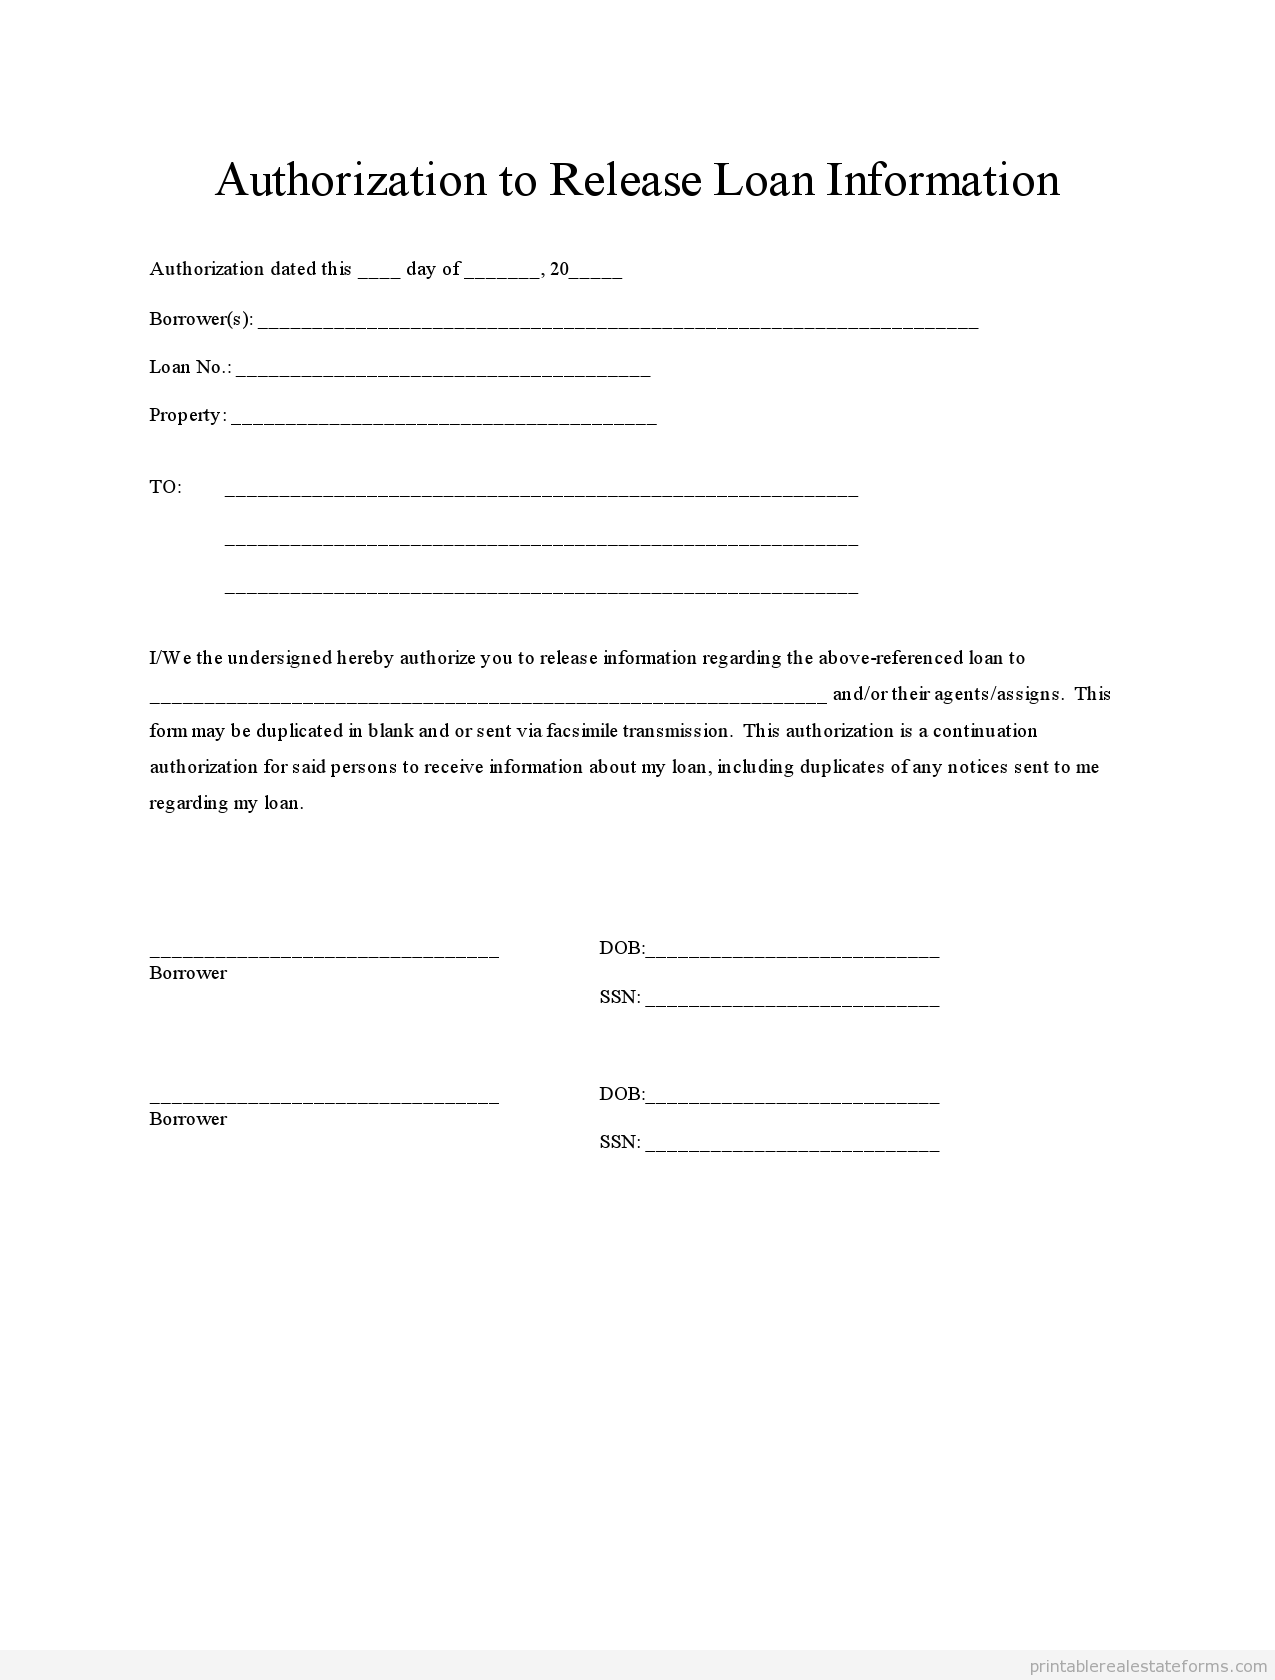 Free Loan Authorization Form Printable Real Estate Forms Real Estate Forms Real Estate Templates Document Templates